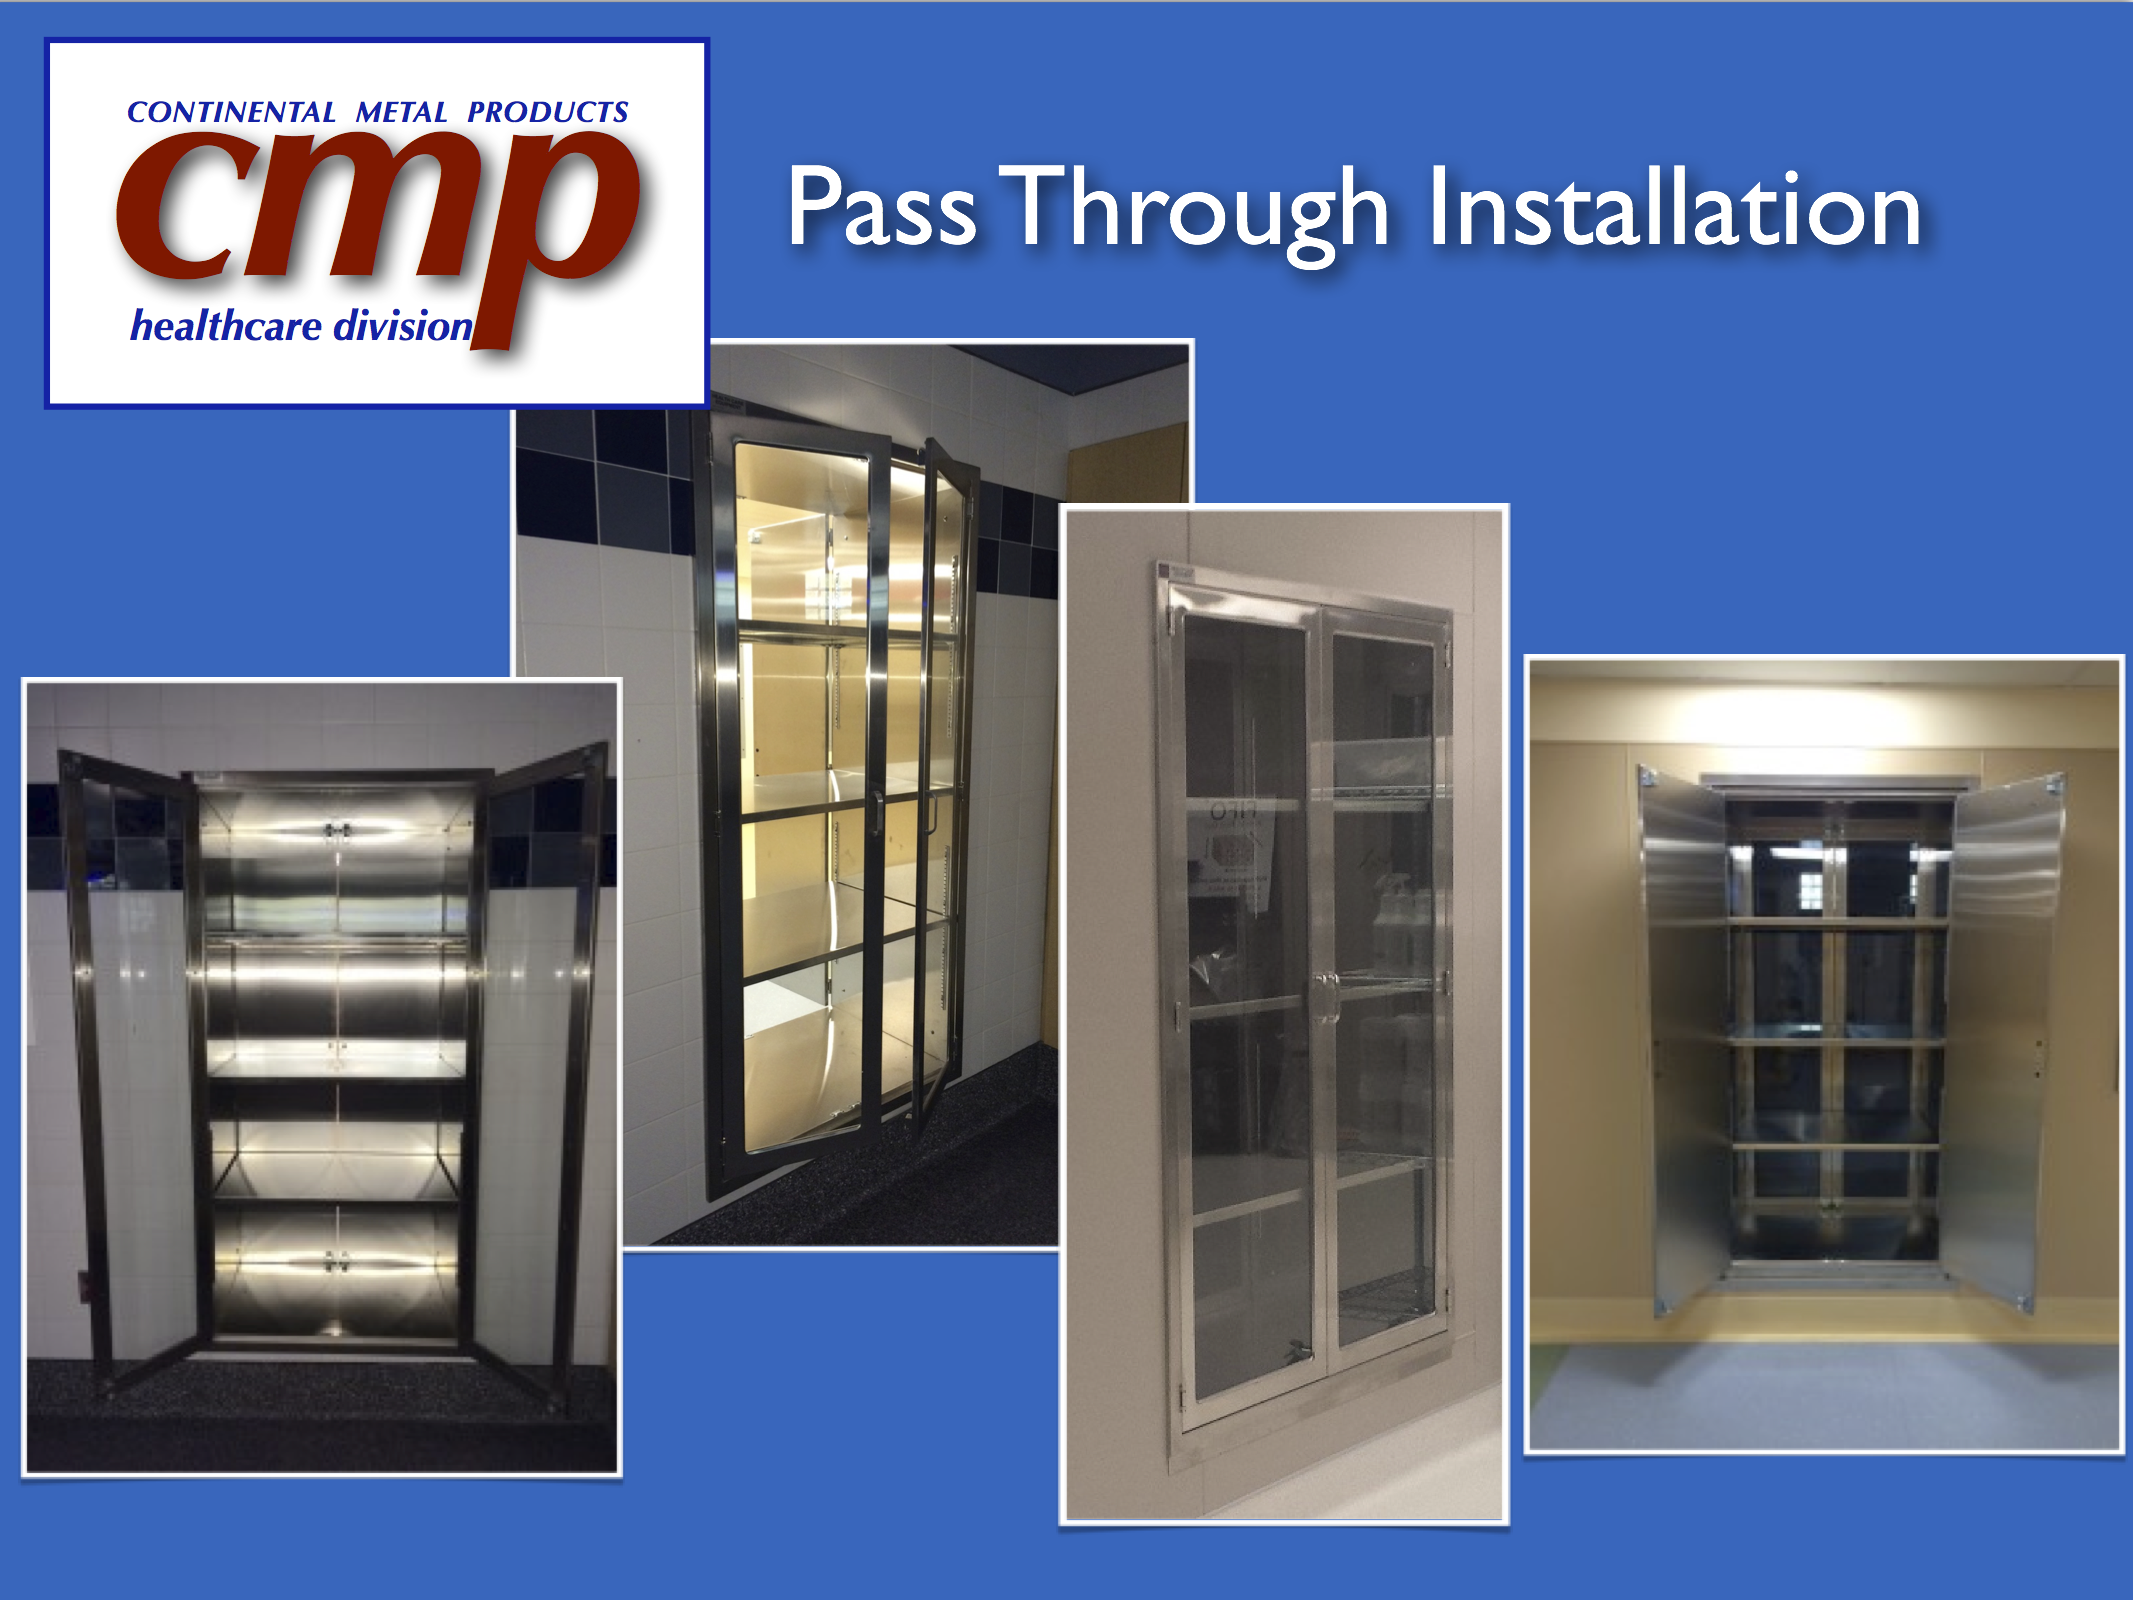 Hospital Pharmacy Pass Through Cabinets With Interior Lighting For Easy  Viewing Of Supplies From Continental Metal